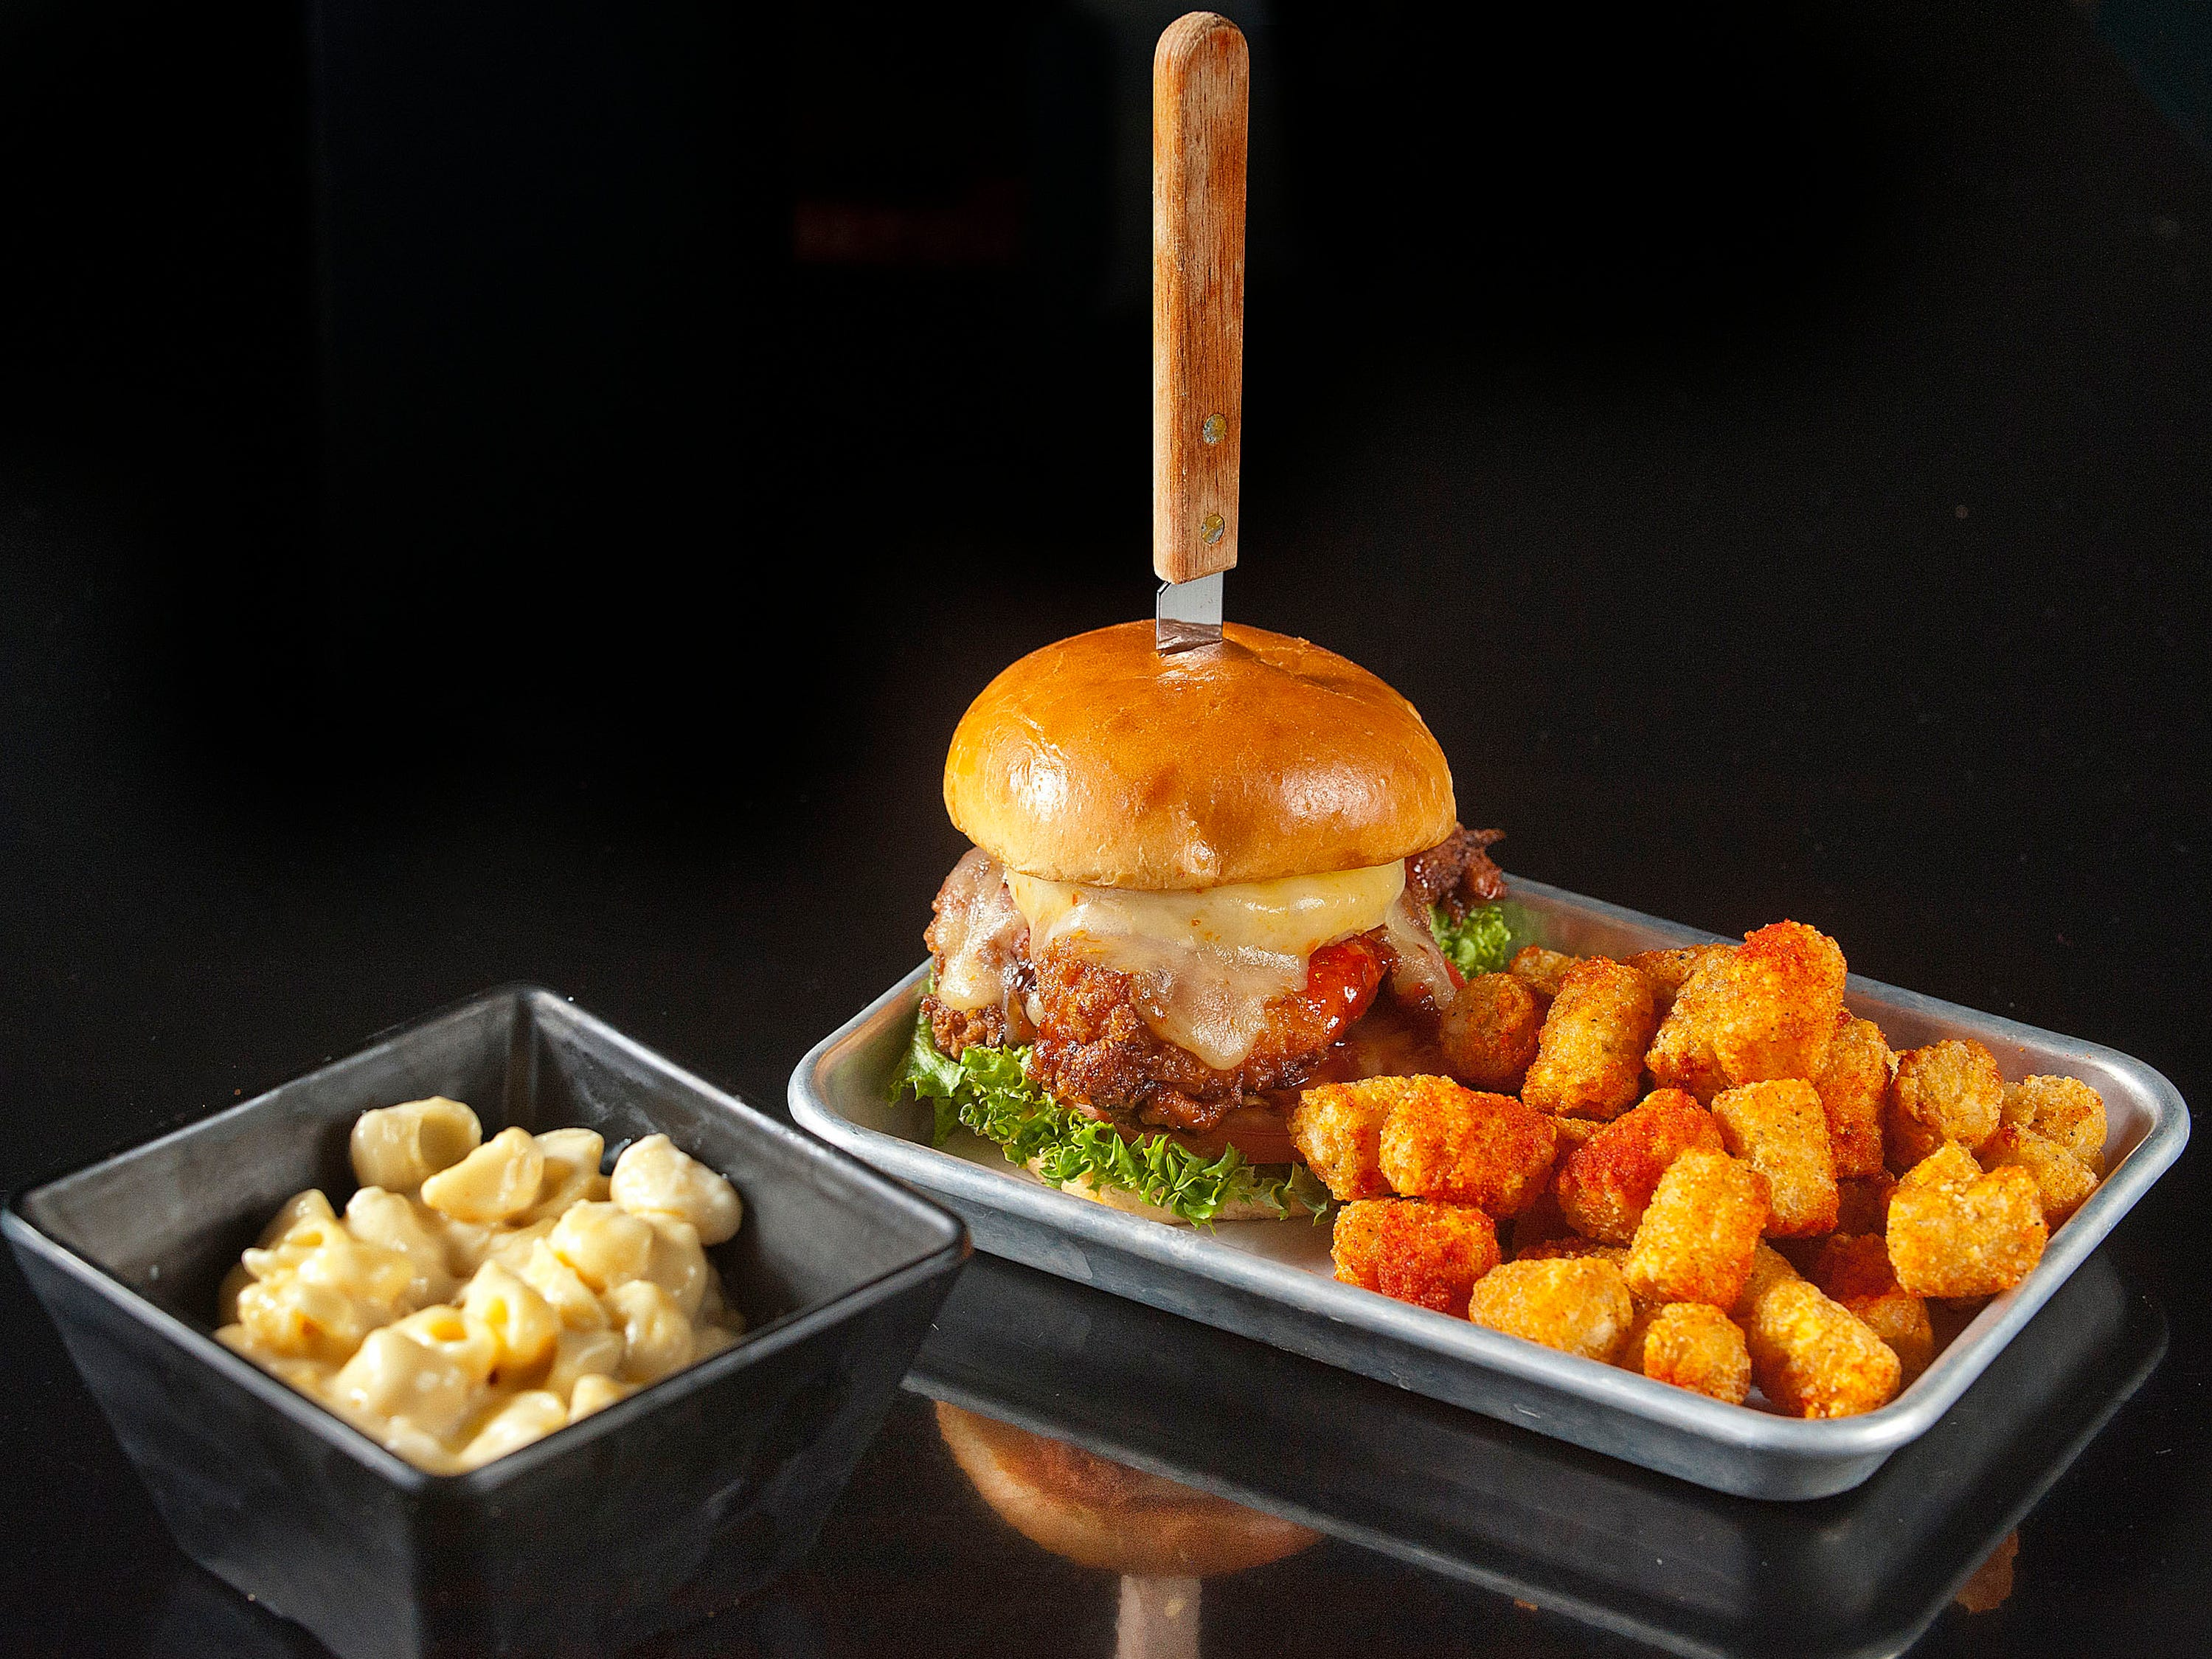 The Recbar's Sweet & Spicy Chicken Sandwich starts with a 6-oz. fried breast of chicken that has been tossed in a sweet and spicy sriracha sauce topped with lettuce, tomato, peperjack cheese and grilled pineapple. At left, is a side order of Mac n' Cheese.14 March 2019